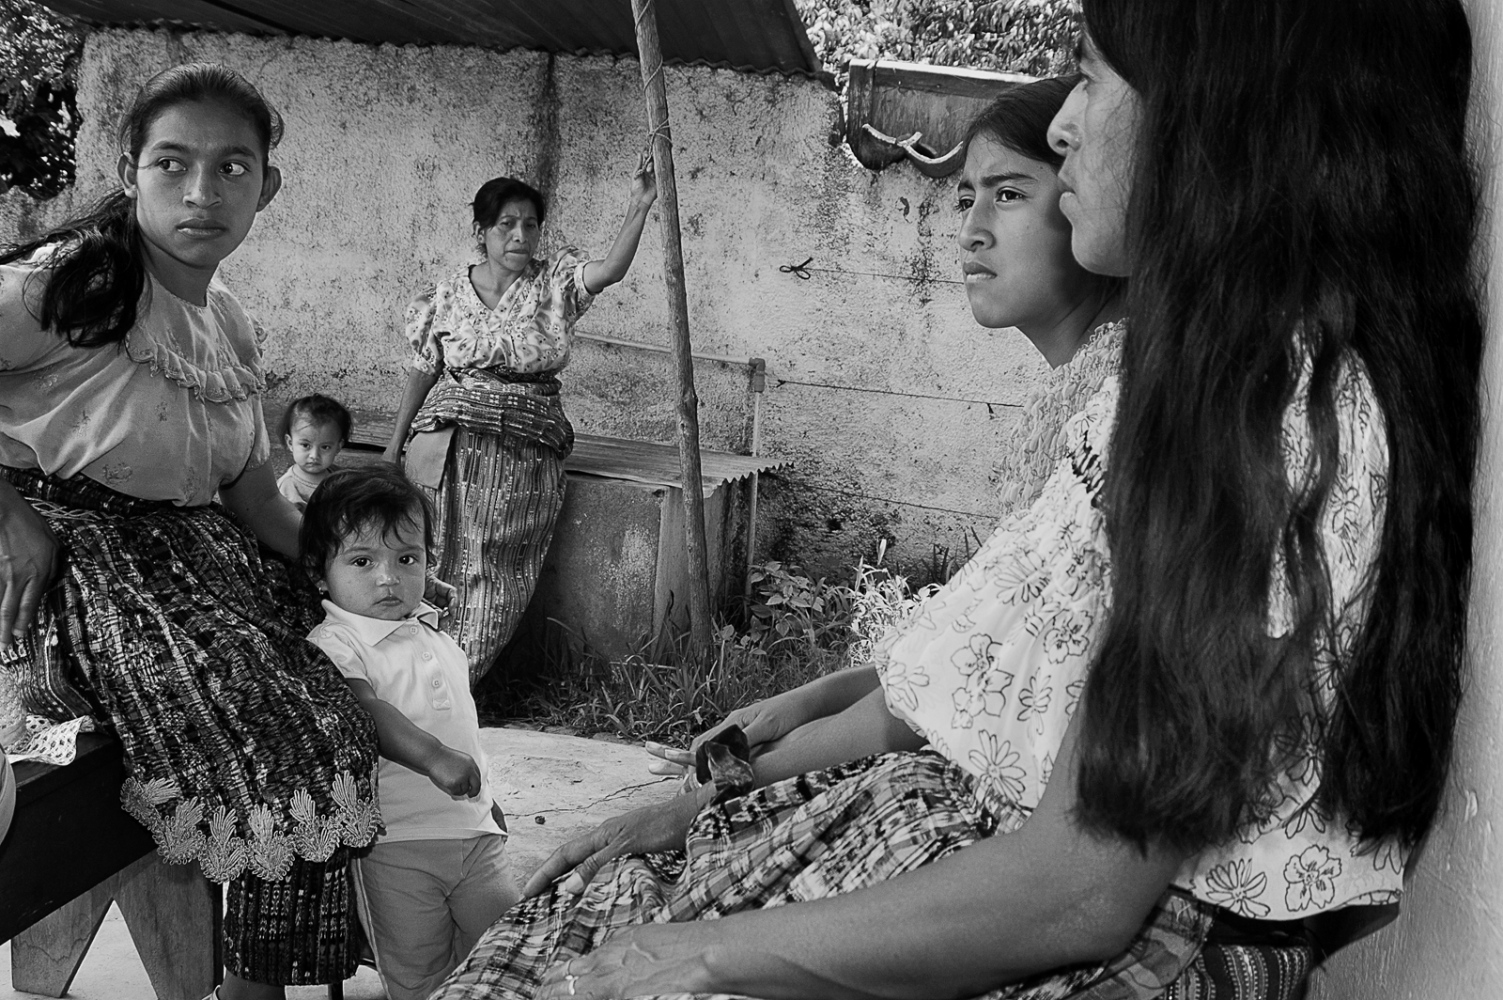 Patients waitng to be seen by a healer. People travel from faraway villages to be seen by the healers of San Pedro. Even though the practice of healing is common throughout Guatemala, the healers and bonesetters of San Pedro are particularly renowned.